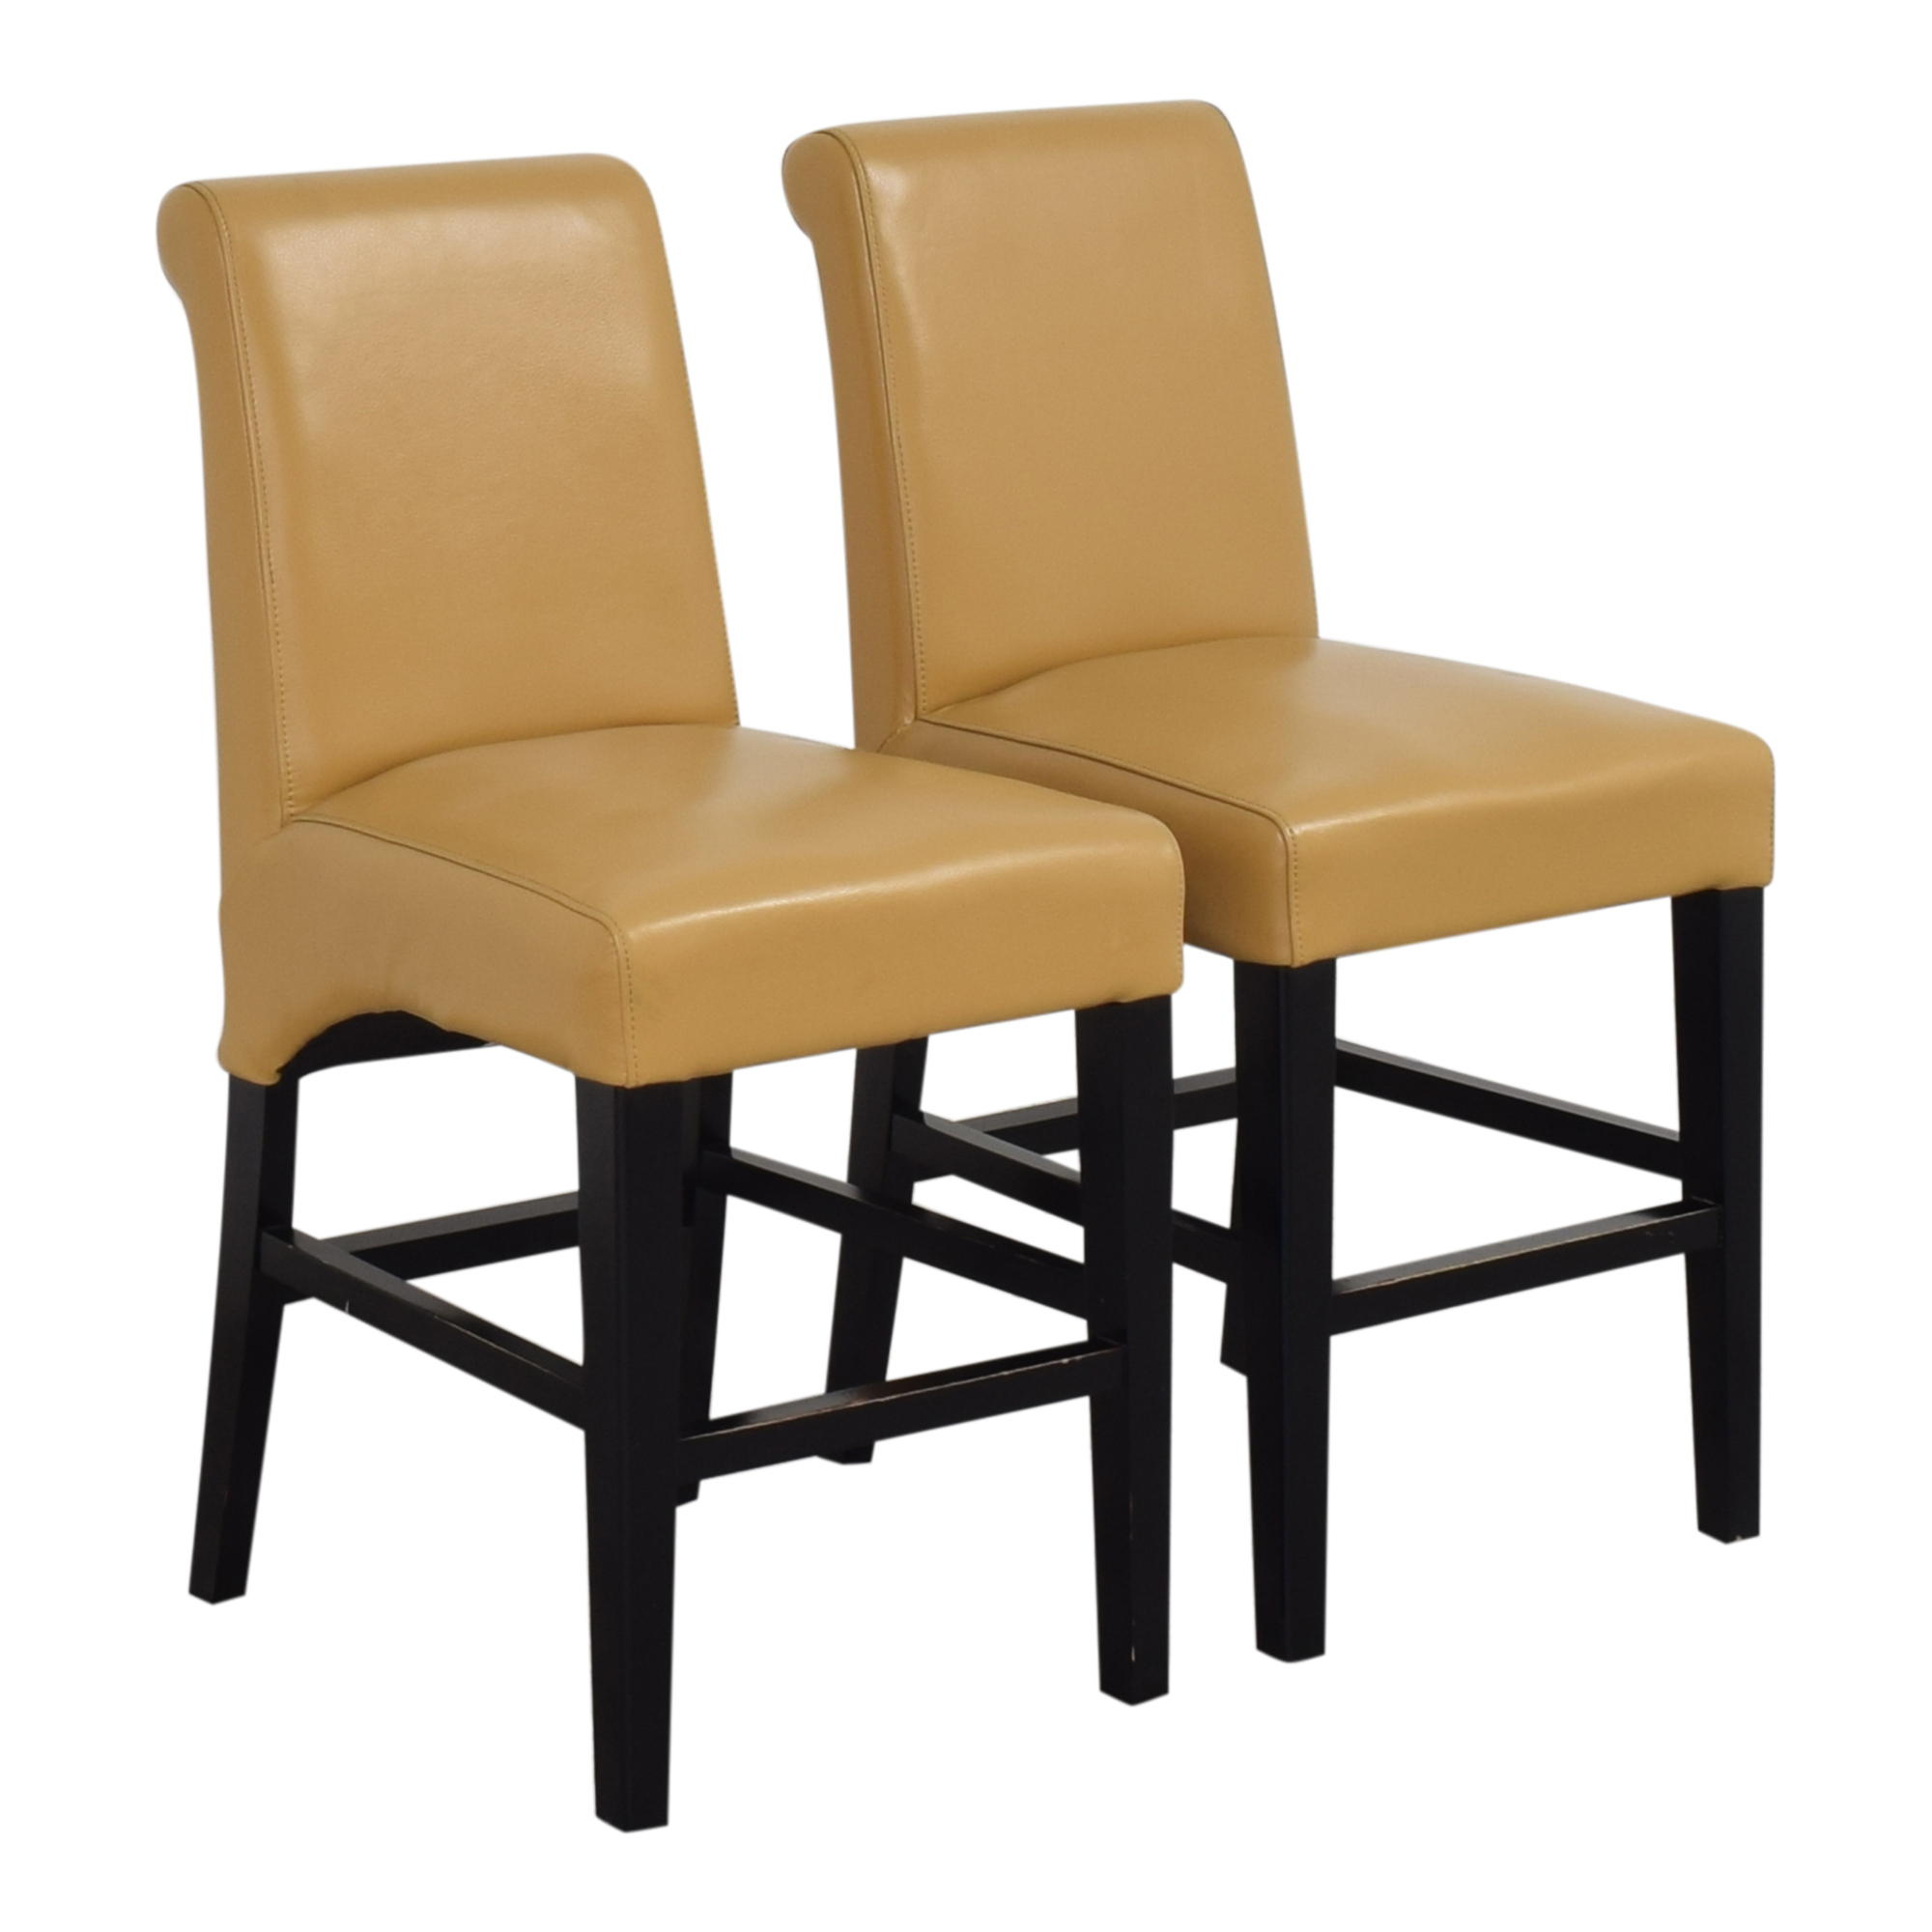 Upholstered Scroll Back Counter Stools tan and black